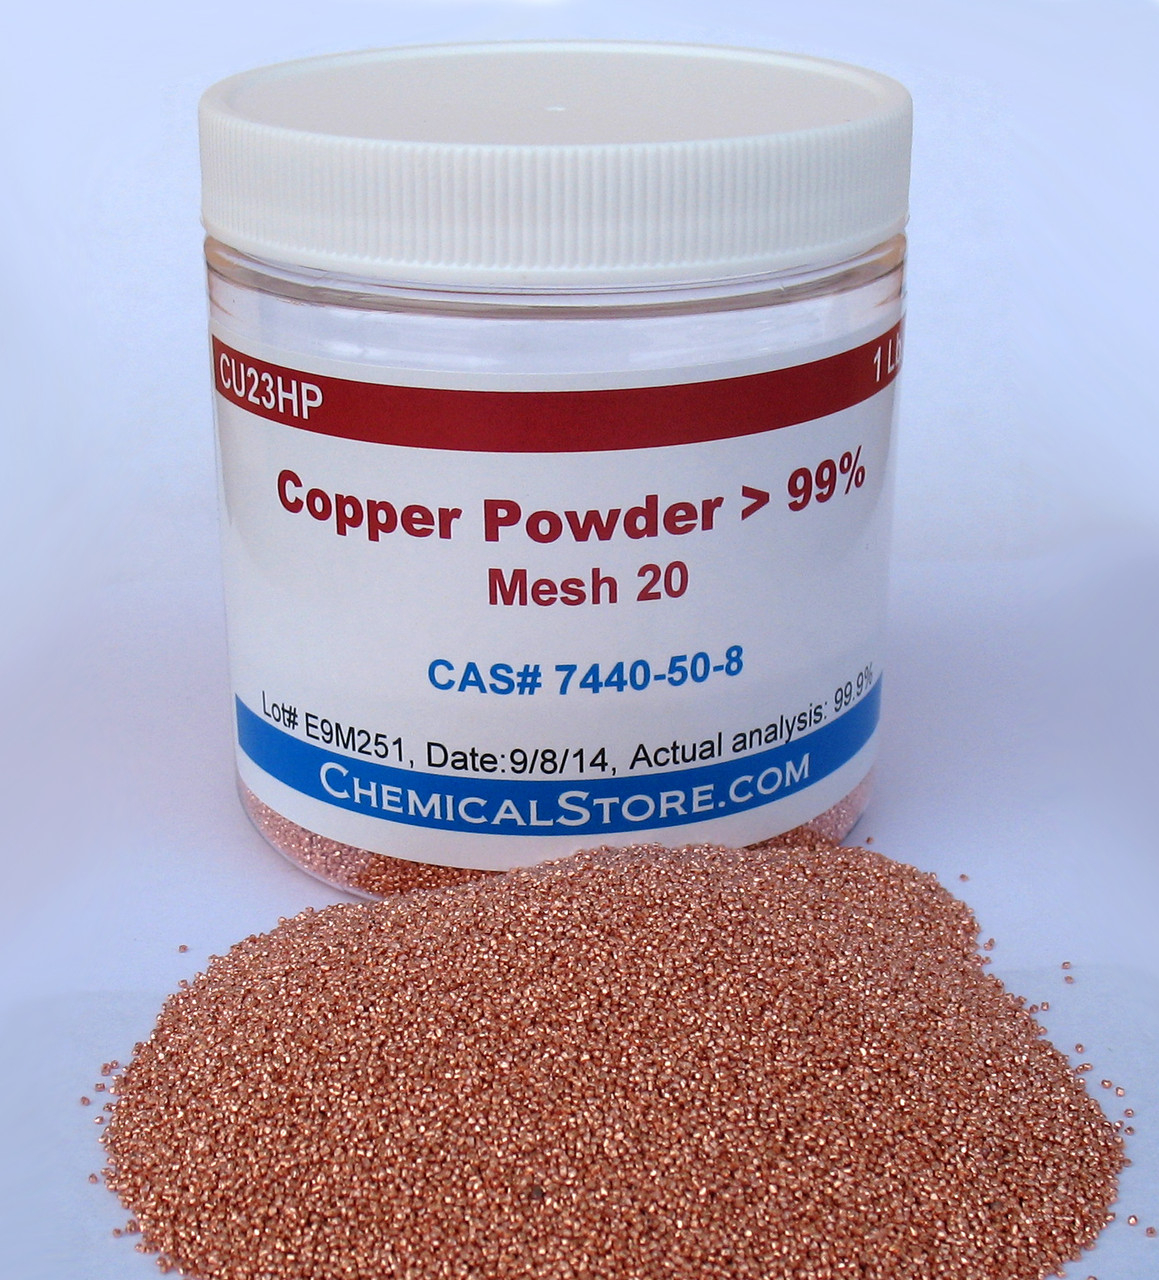 High purity granular copper mesh 20 is made by cutting bare copper wire and then rolling it to form polygons. Each granule is less than one millimeter in diameter.